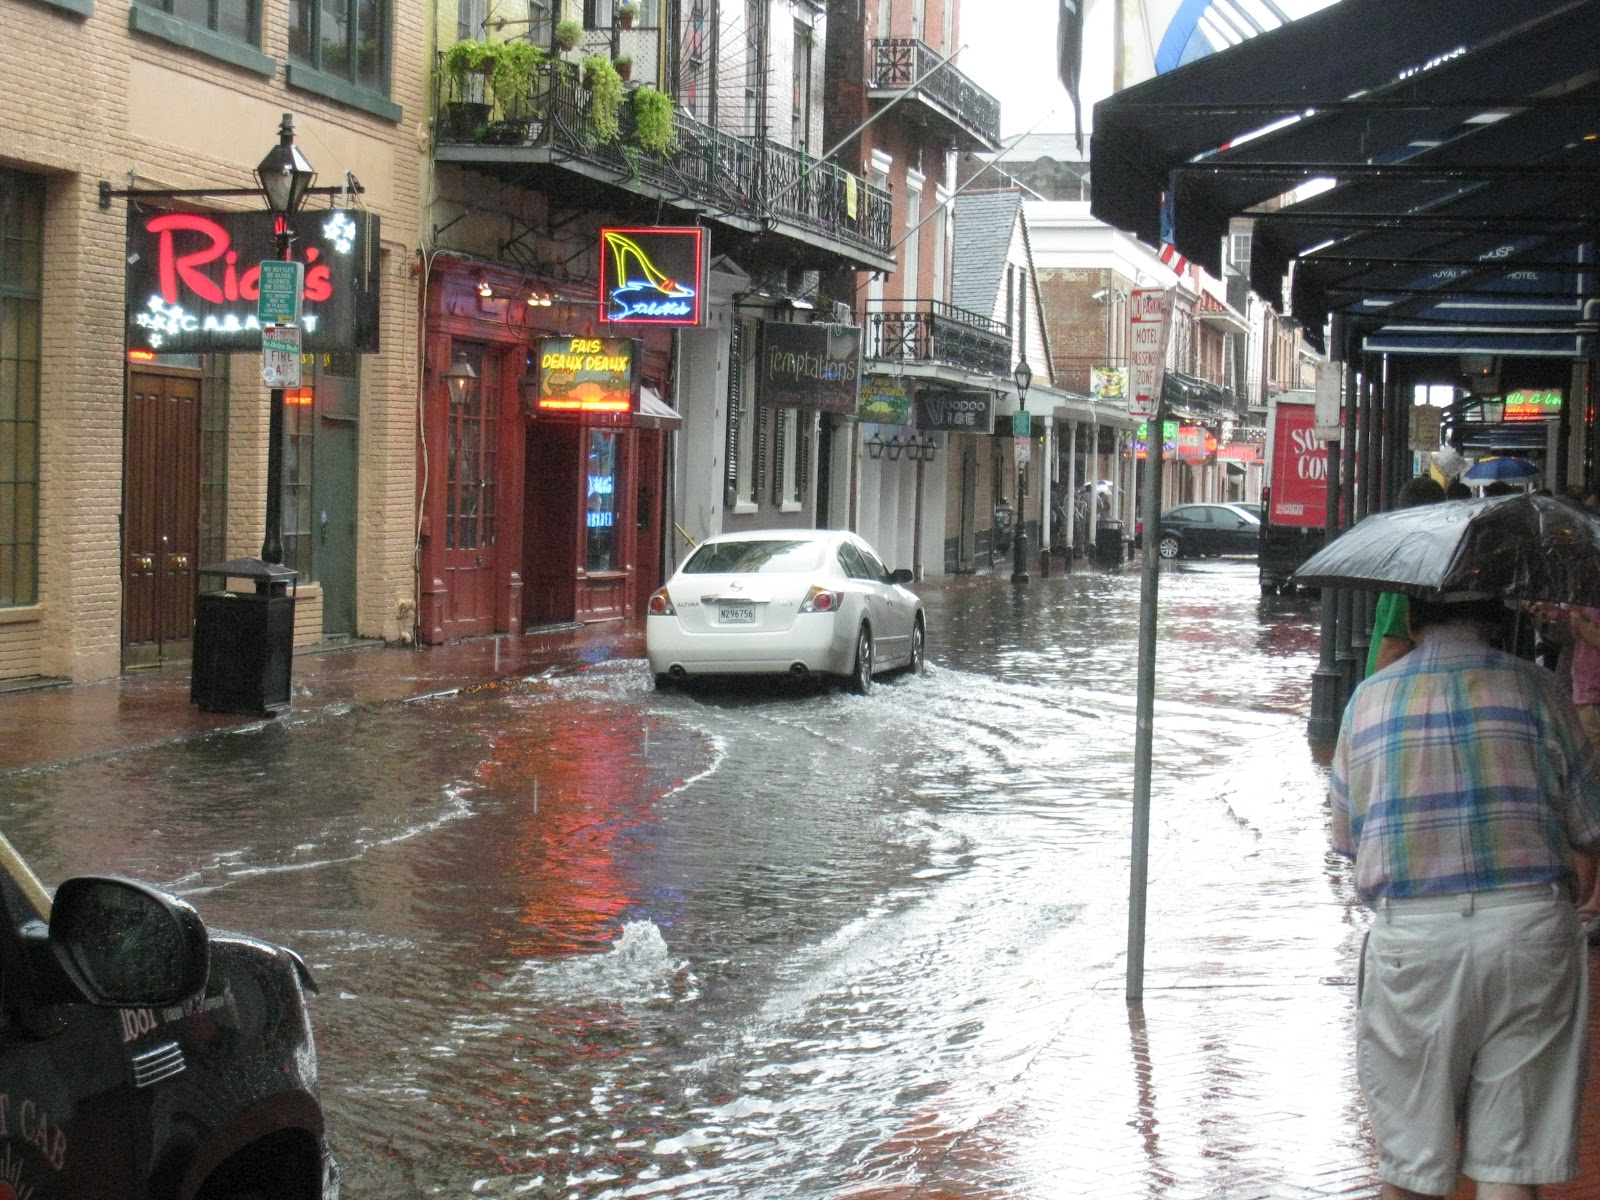 yes bourbon st did flood that morning